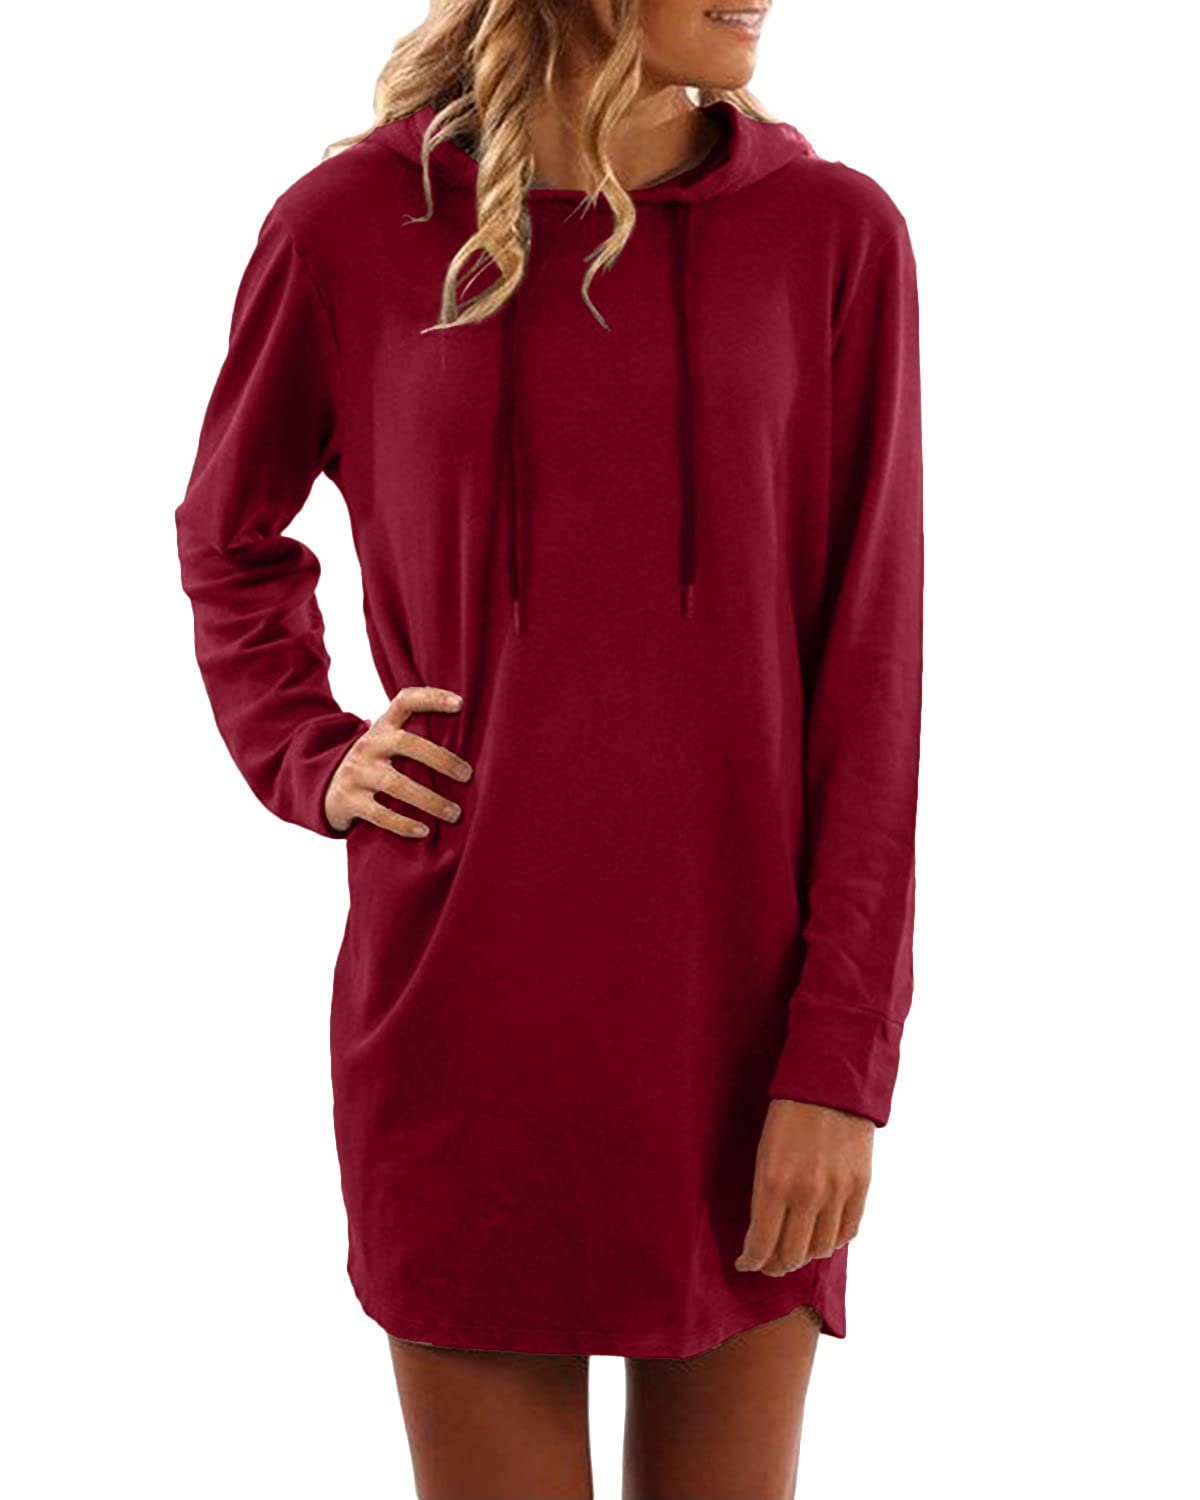 SUNNYME Women's Long Sleeve Sweatshirt Dresses Oversized Loose Fit Pullover Shirts SUNNYMEpajihduihe1669